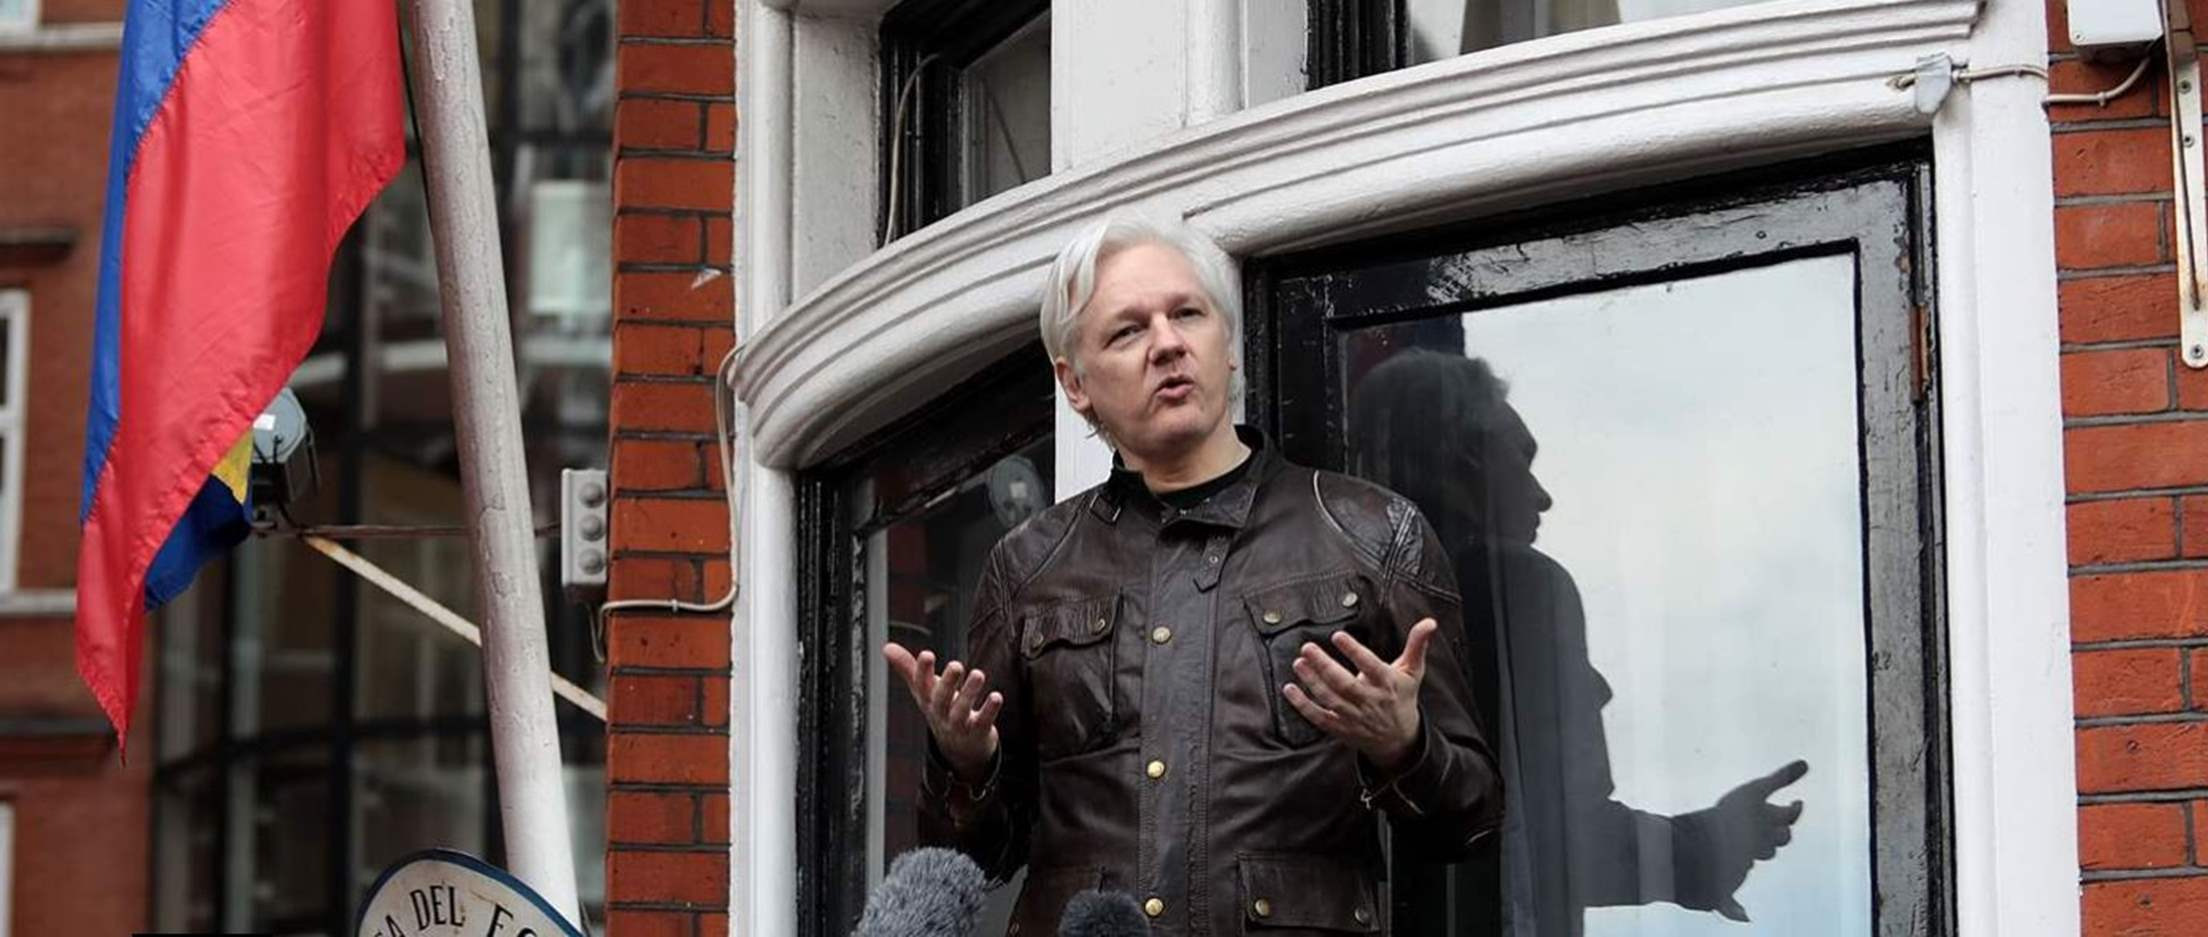 UK: Assange bail application highlights COVID-19 risk to many vulnerable detainees and prisoners